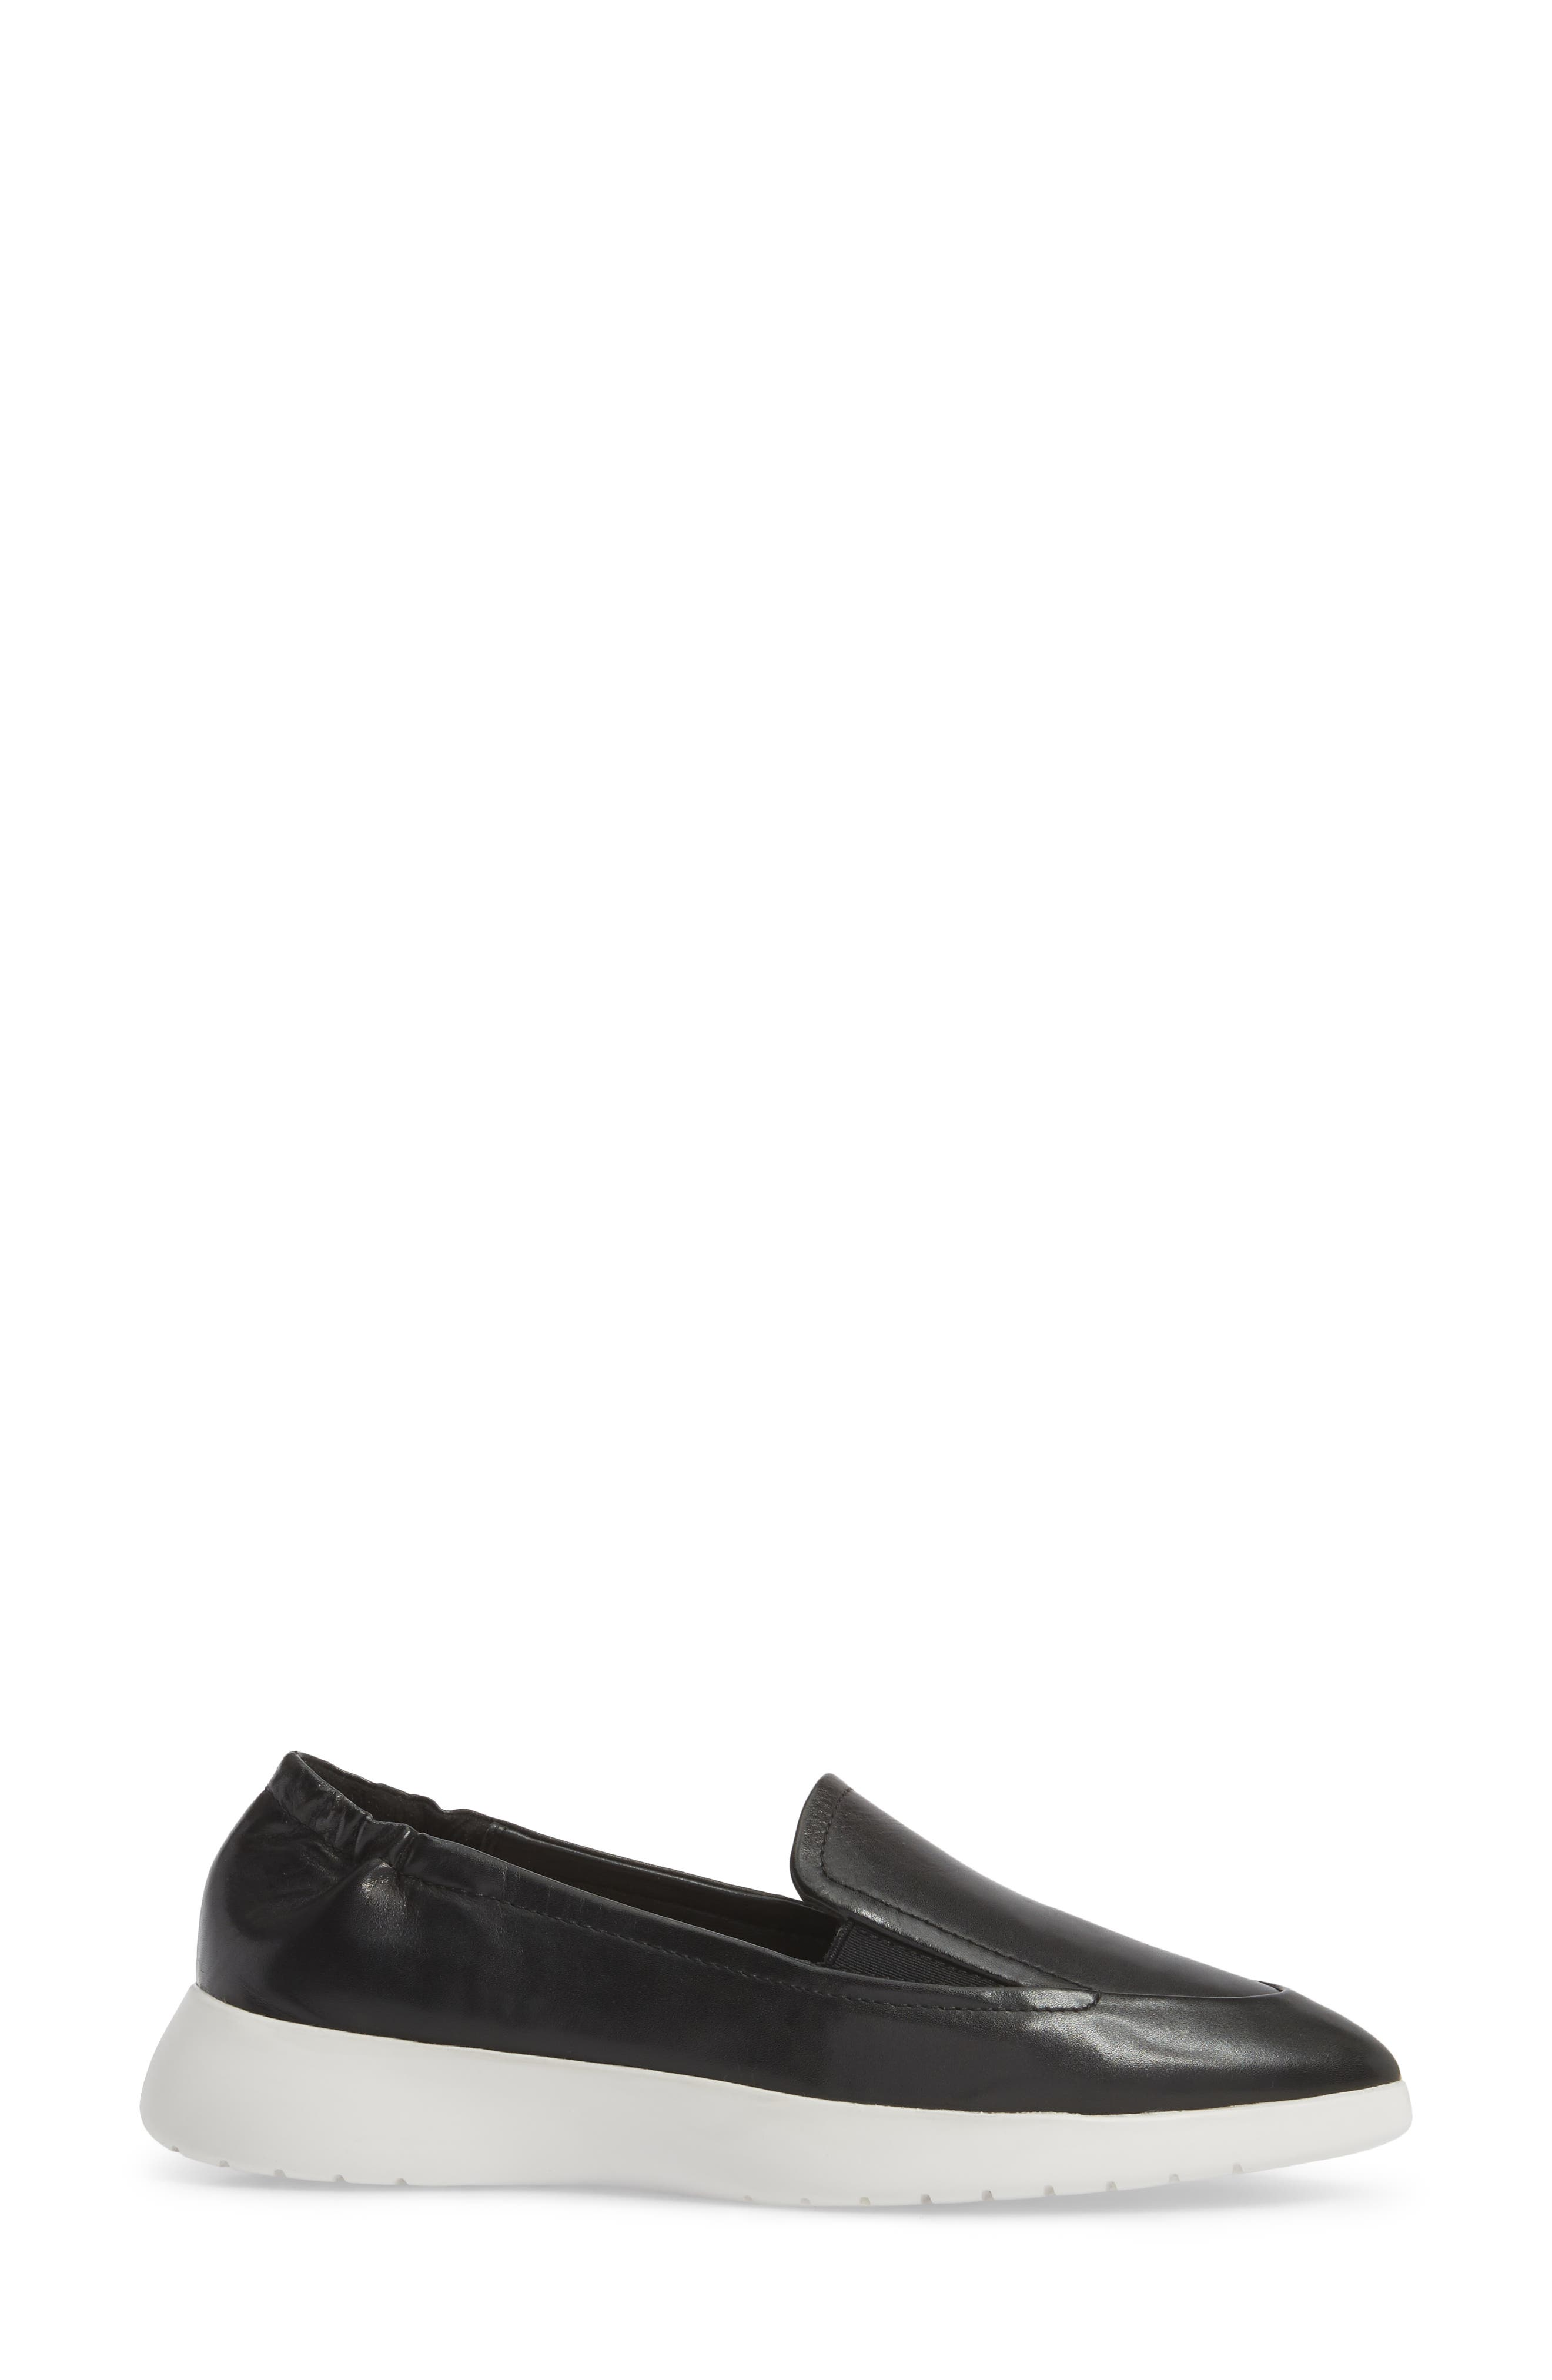 Dana Loafer Sneaker,                             Alternate thumbnail 3, color,                             Black Leather